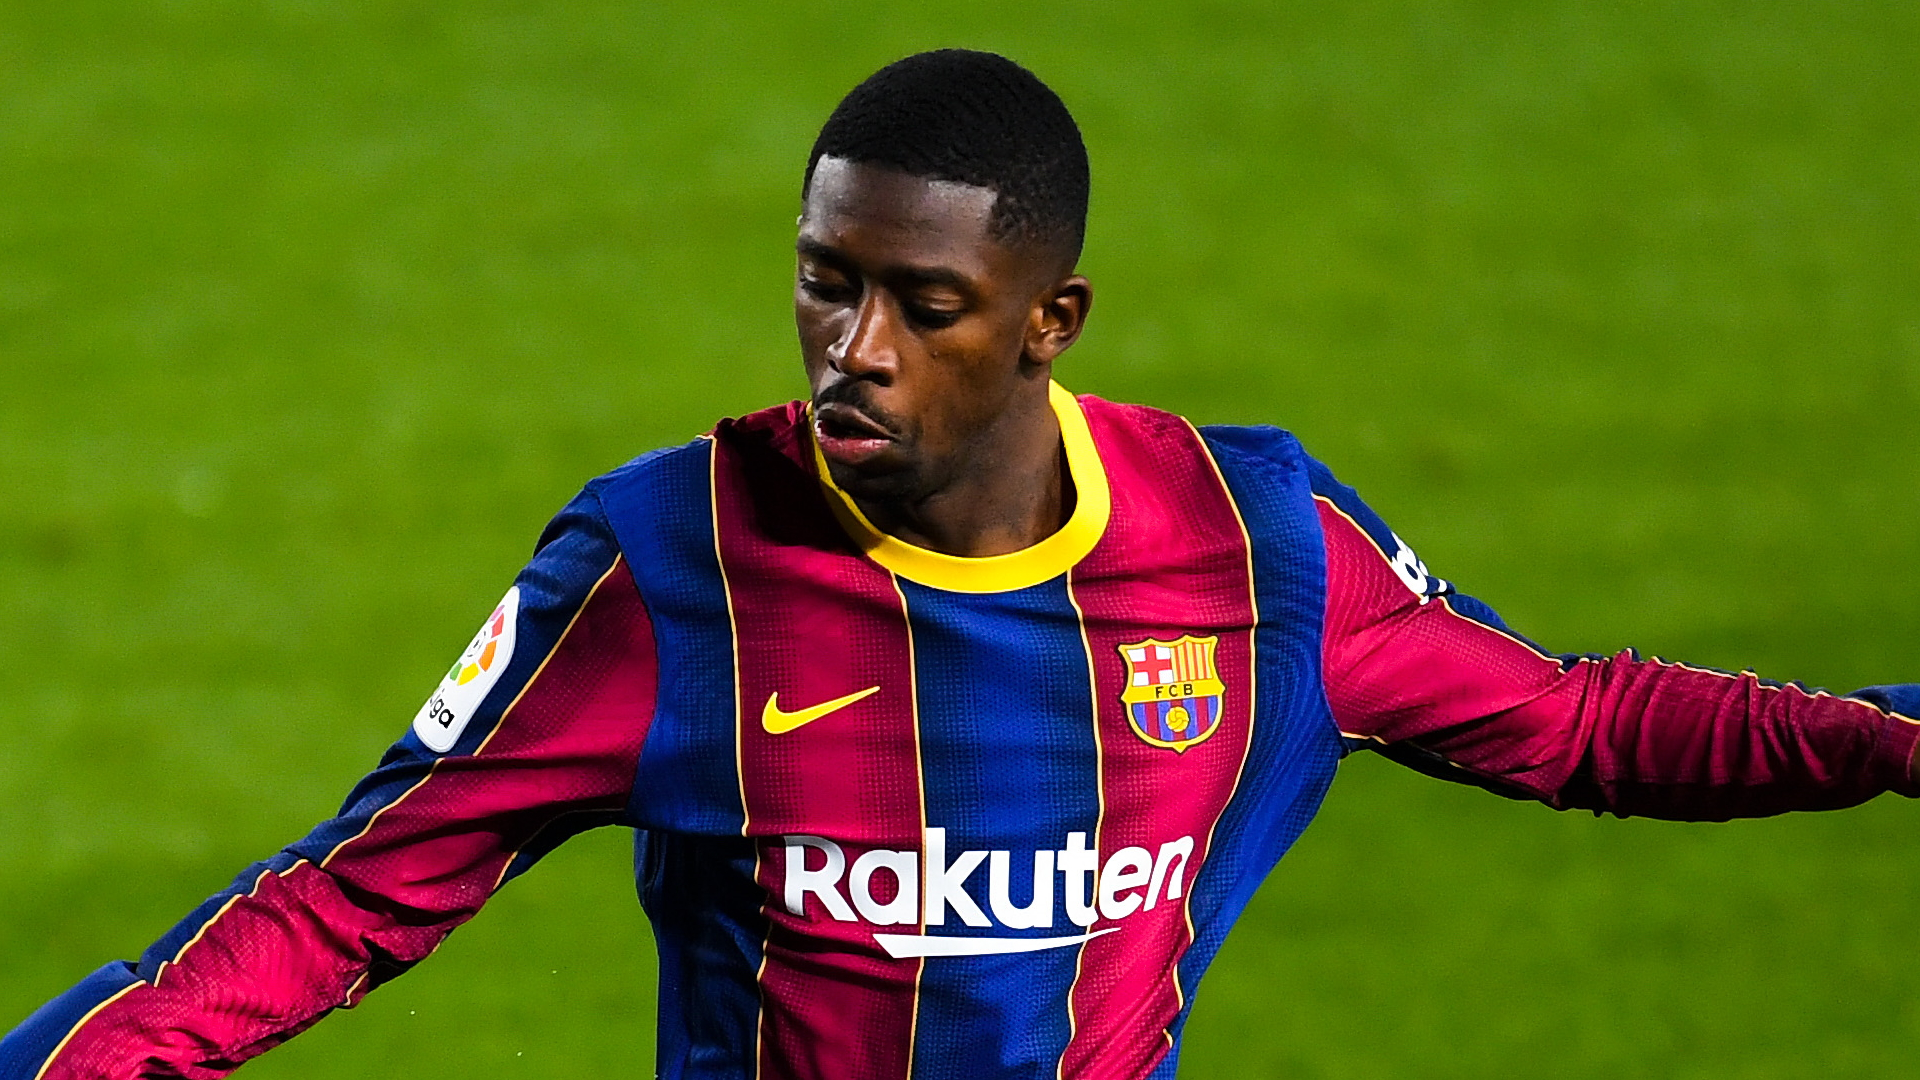 Dembele looks for Newcastle transfer as Barcelona contract talks stall